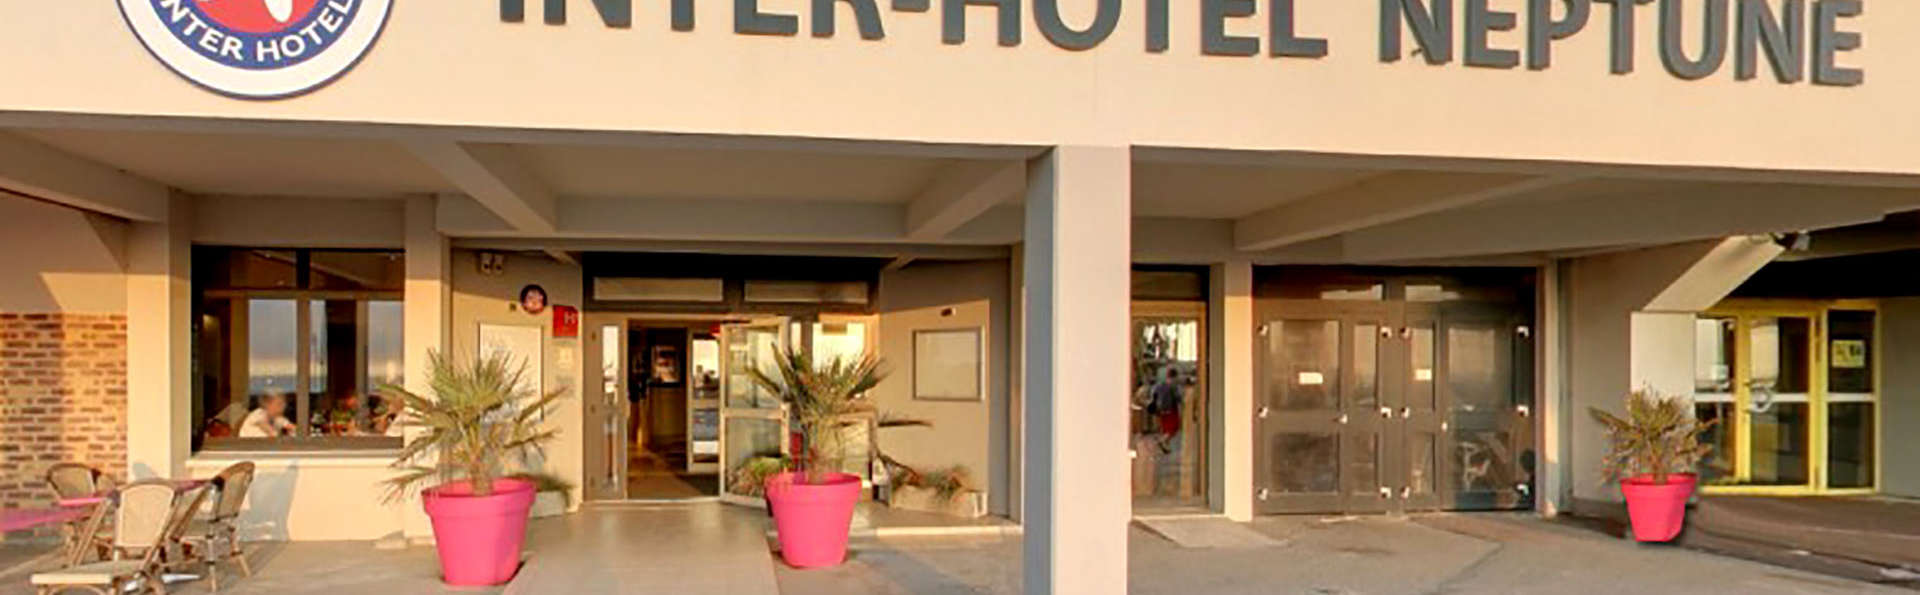 The Originals Boutique, Hôtel Neptune, Berck-sur-Mer (Inter-Hotel) - Edit_Front.jpg